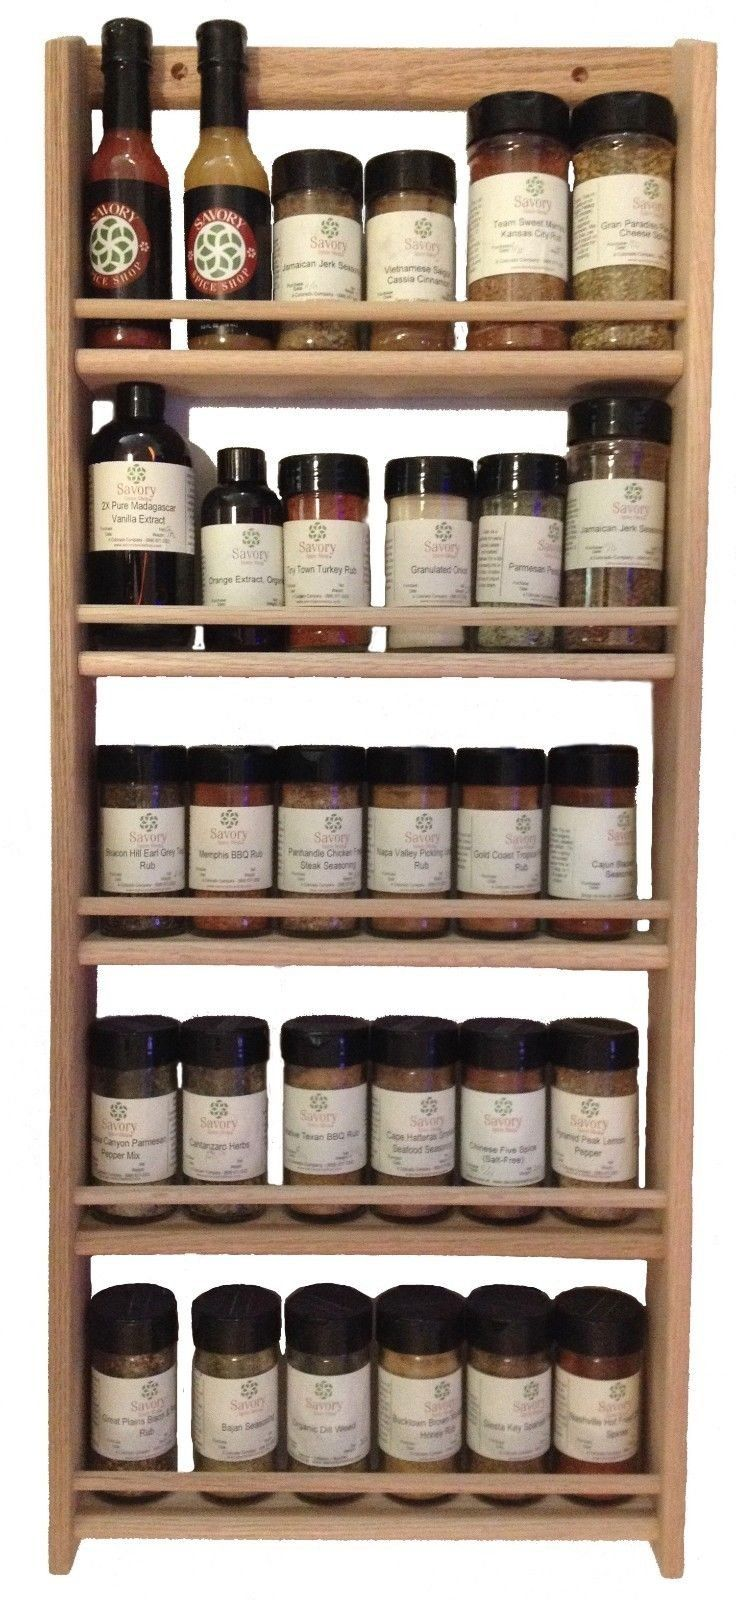 "Wooden Spice Rack Wall Mount Glamorous Solid Oak Wood Spice Rack  3275""h X 1375 ""w  Wall Mount Wooden"